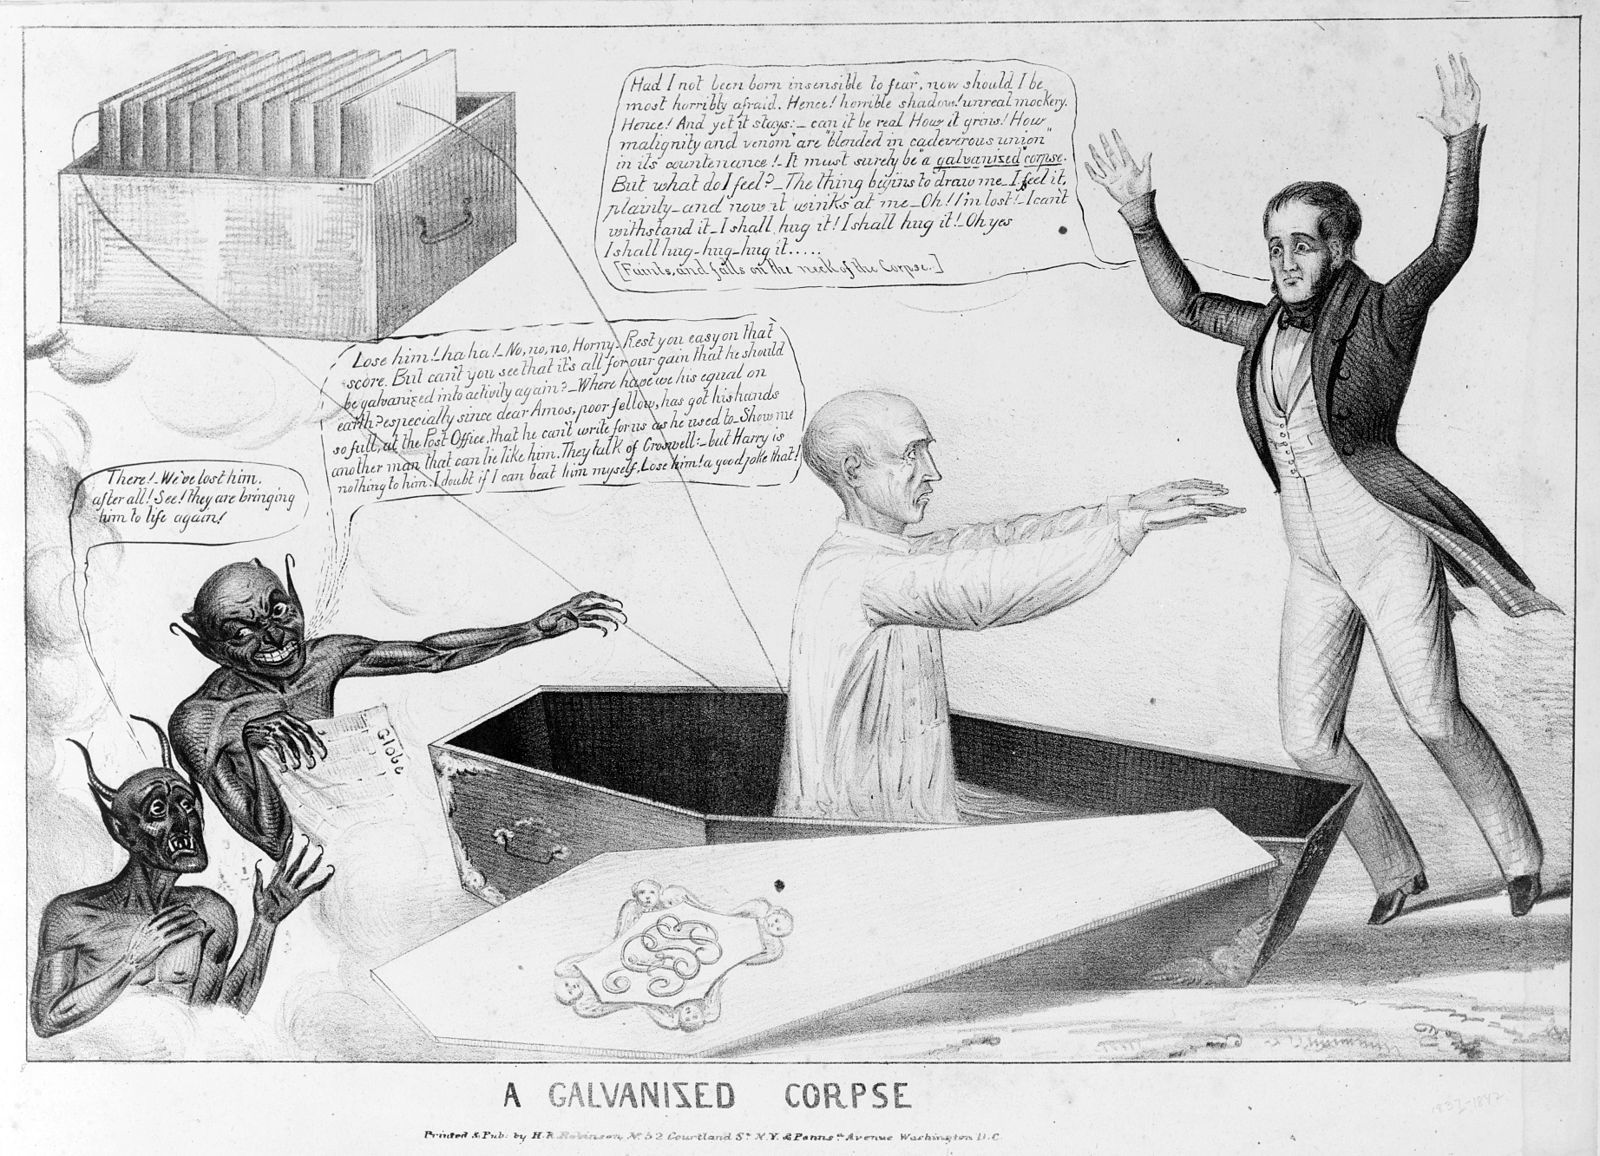 A cartoon commenting on galvanism in 1836.